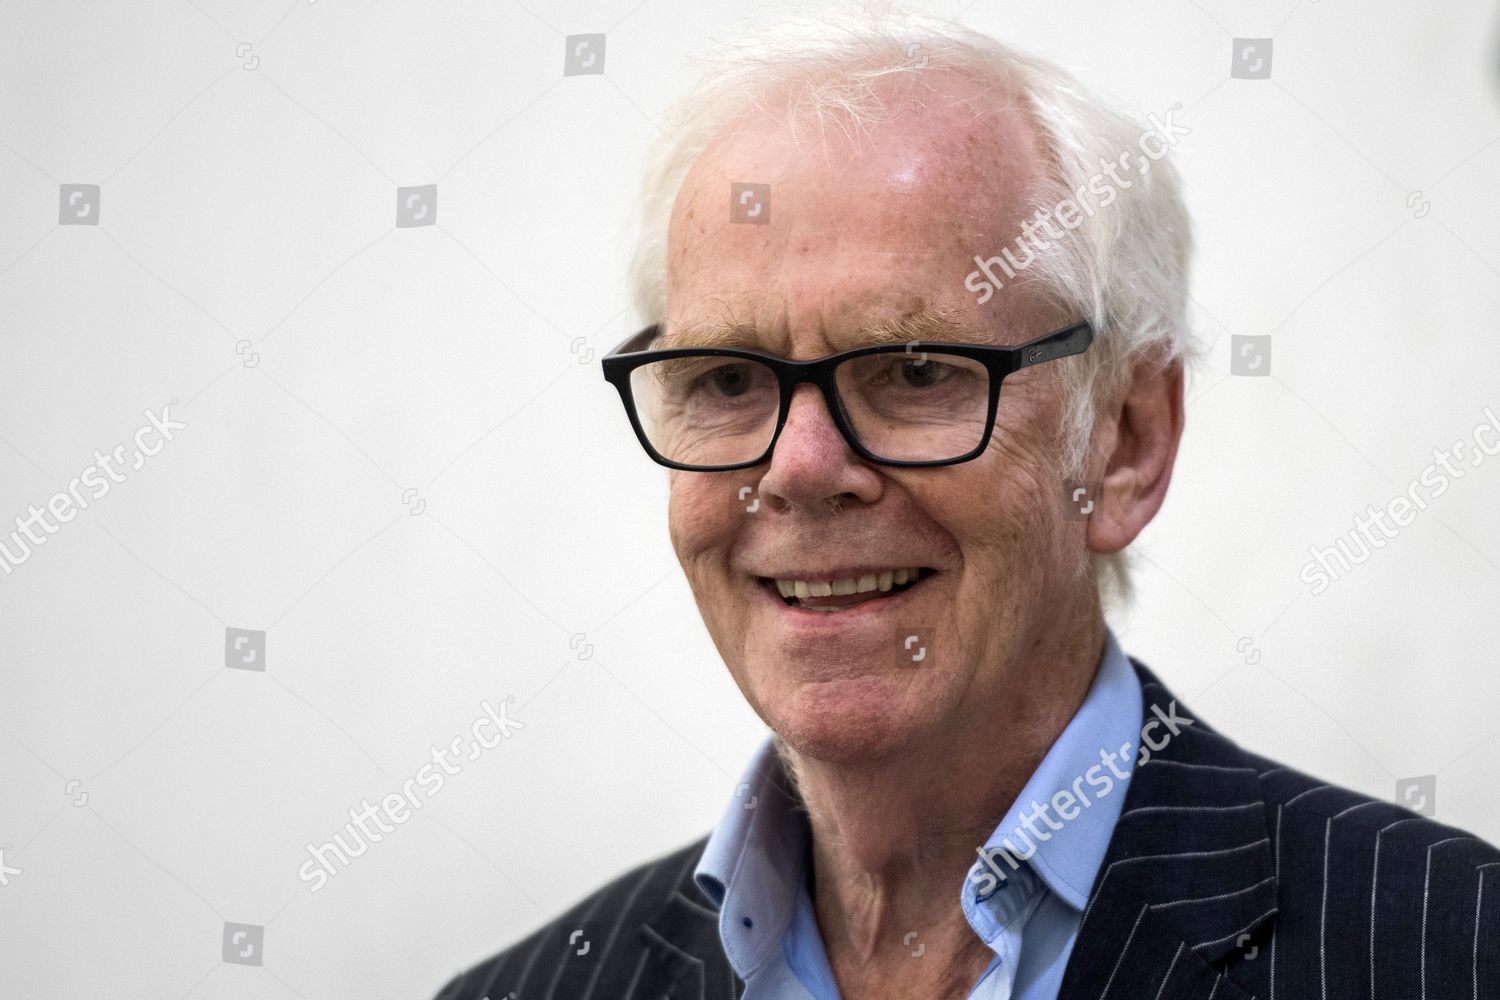 Stockfoto von Star Wars actor Jeremy Bulloch attends photocall at Star Wars Identities London, United Kingdom - 26 Jul 2017